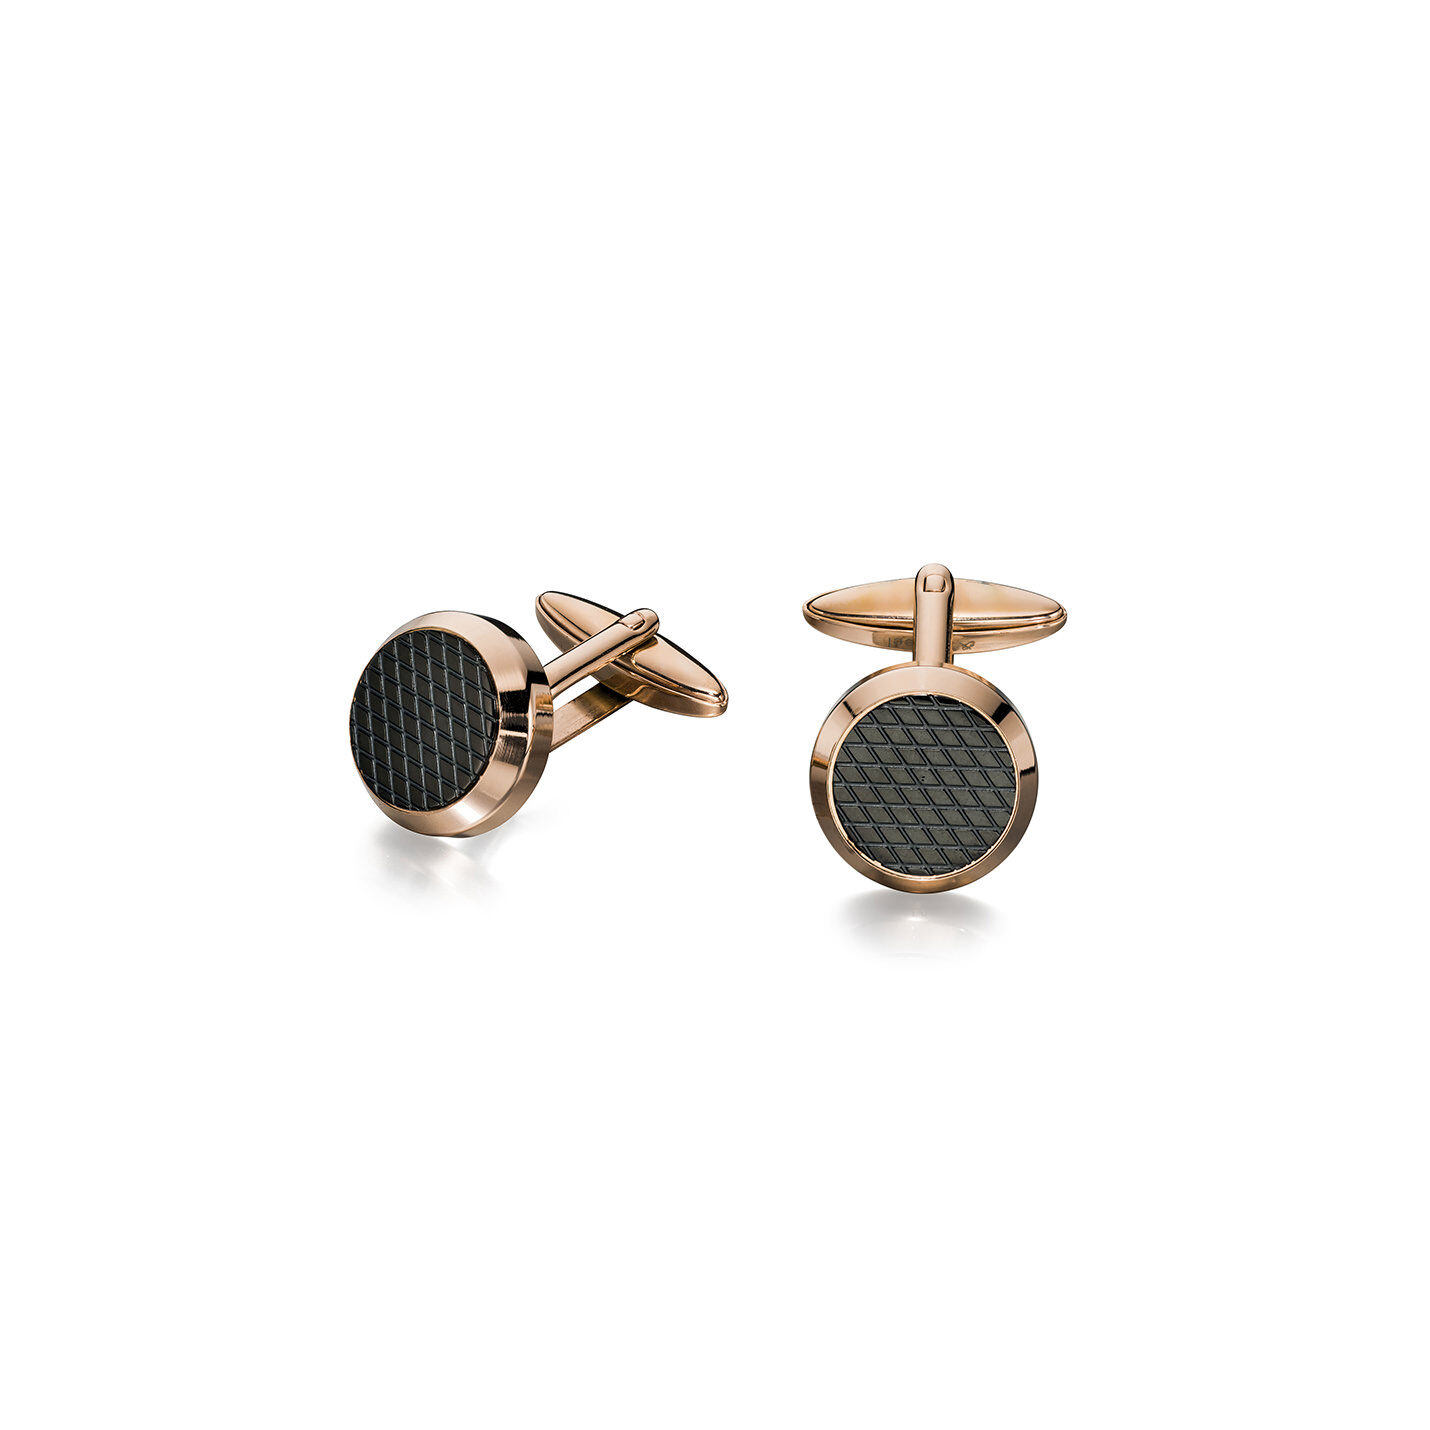 Round Fred Bennett cuff links: rose gold plated Stainless steel with black textured center.